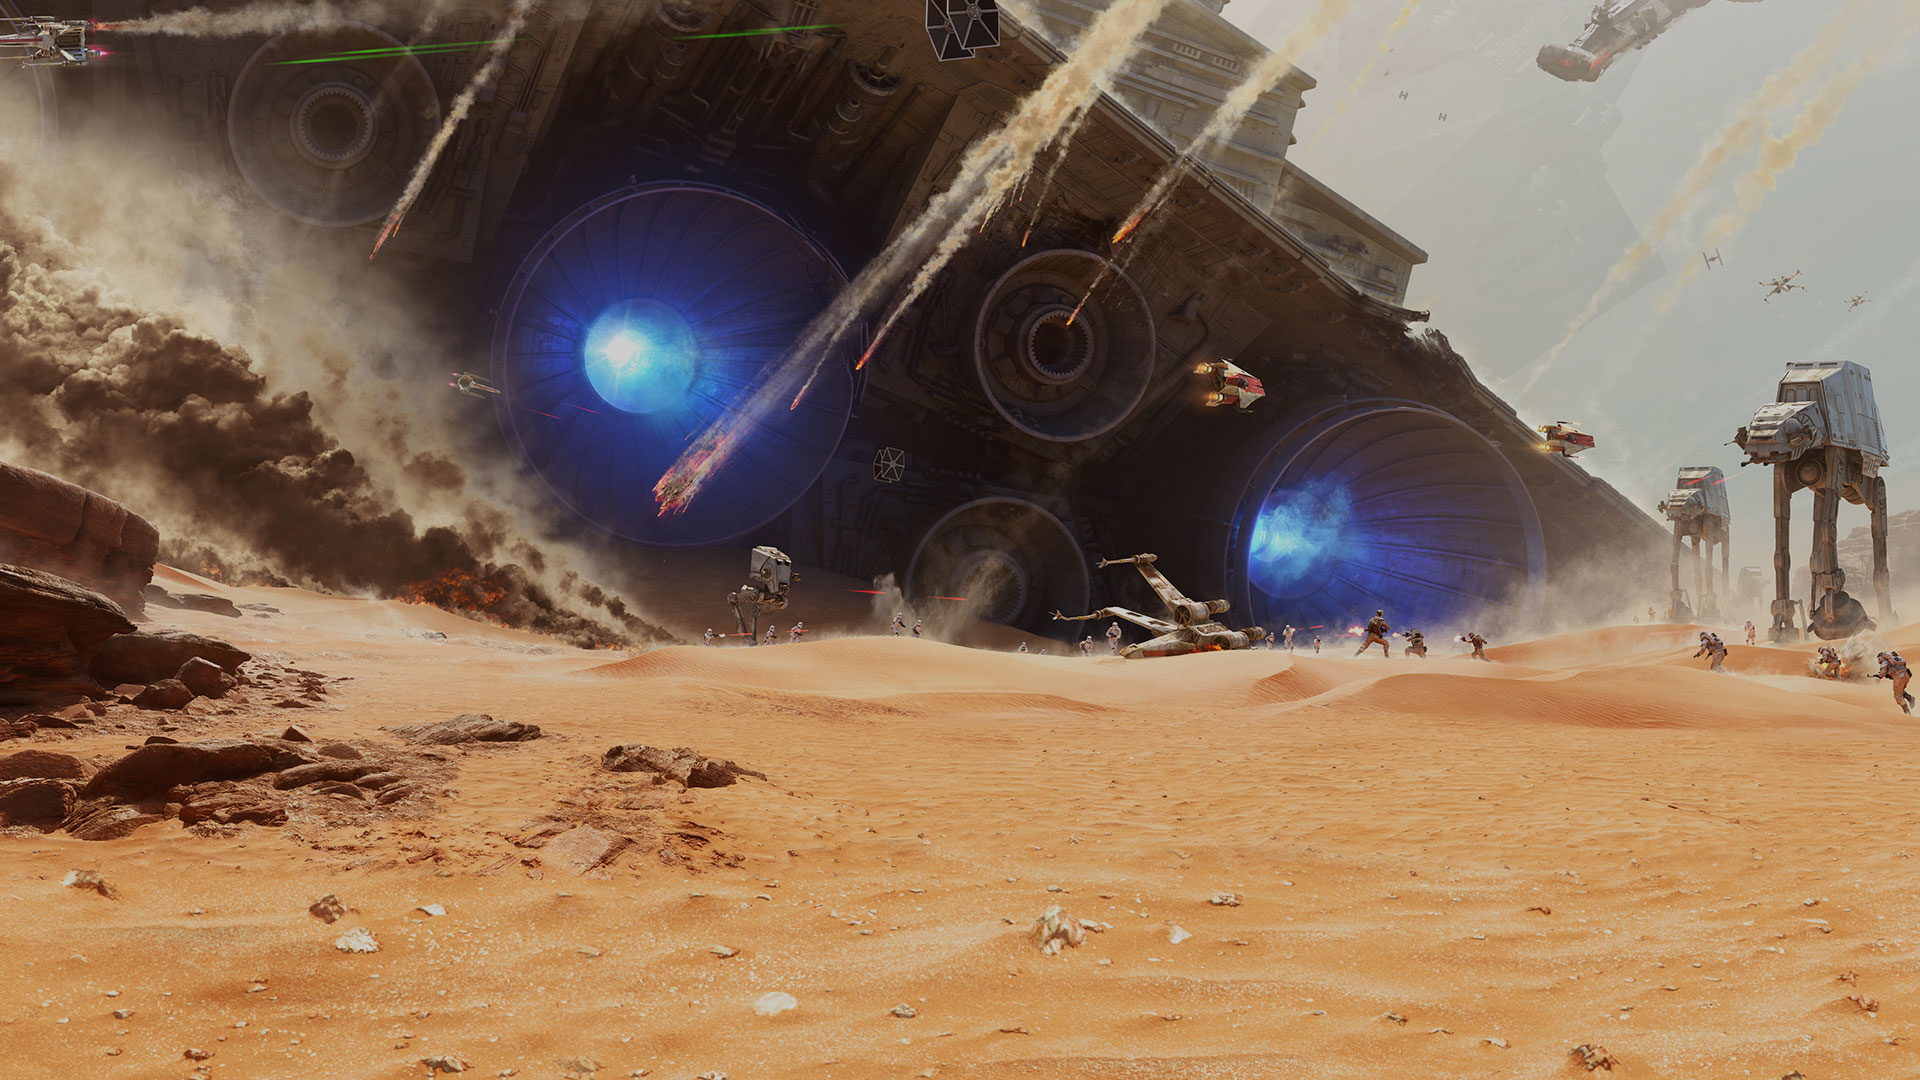 jakku: graveyard of giants | star wars battlefront wiki | fandom